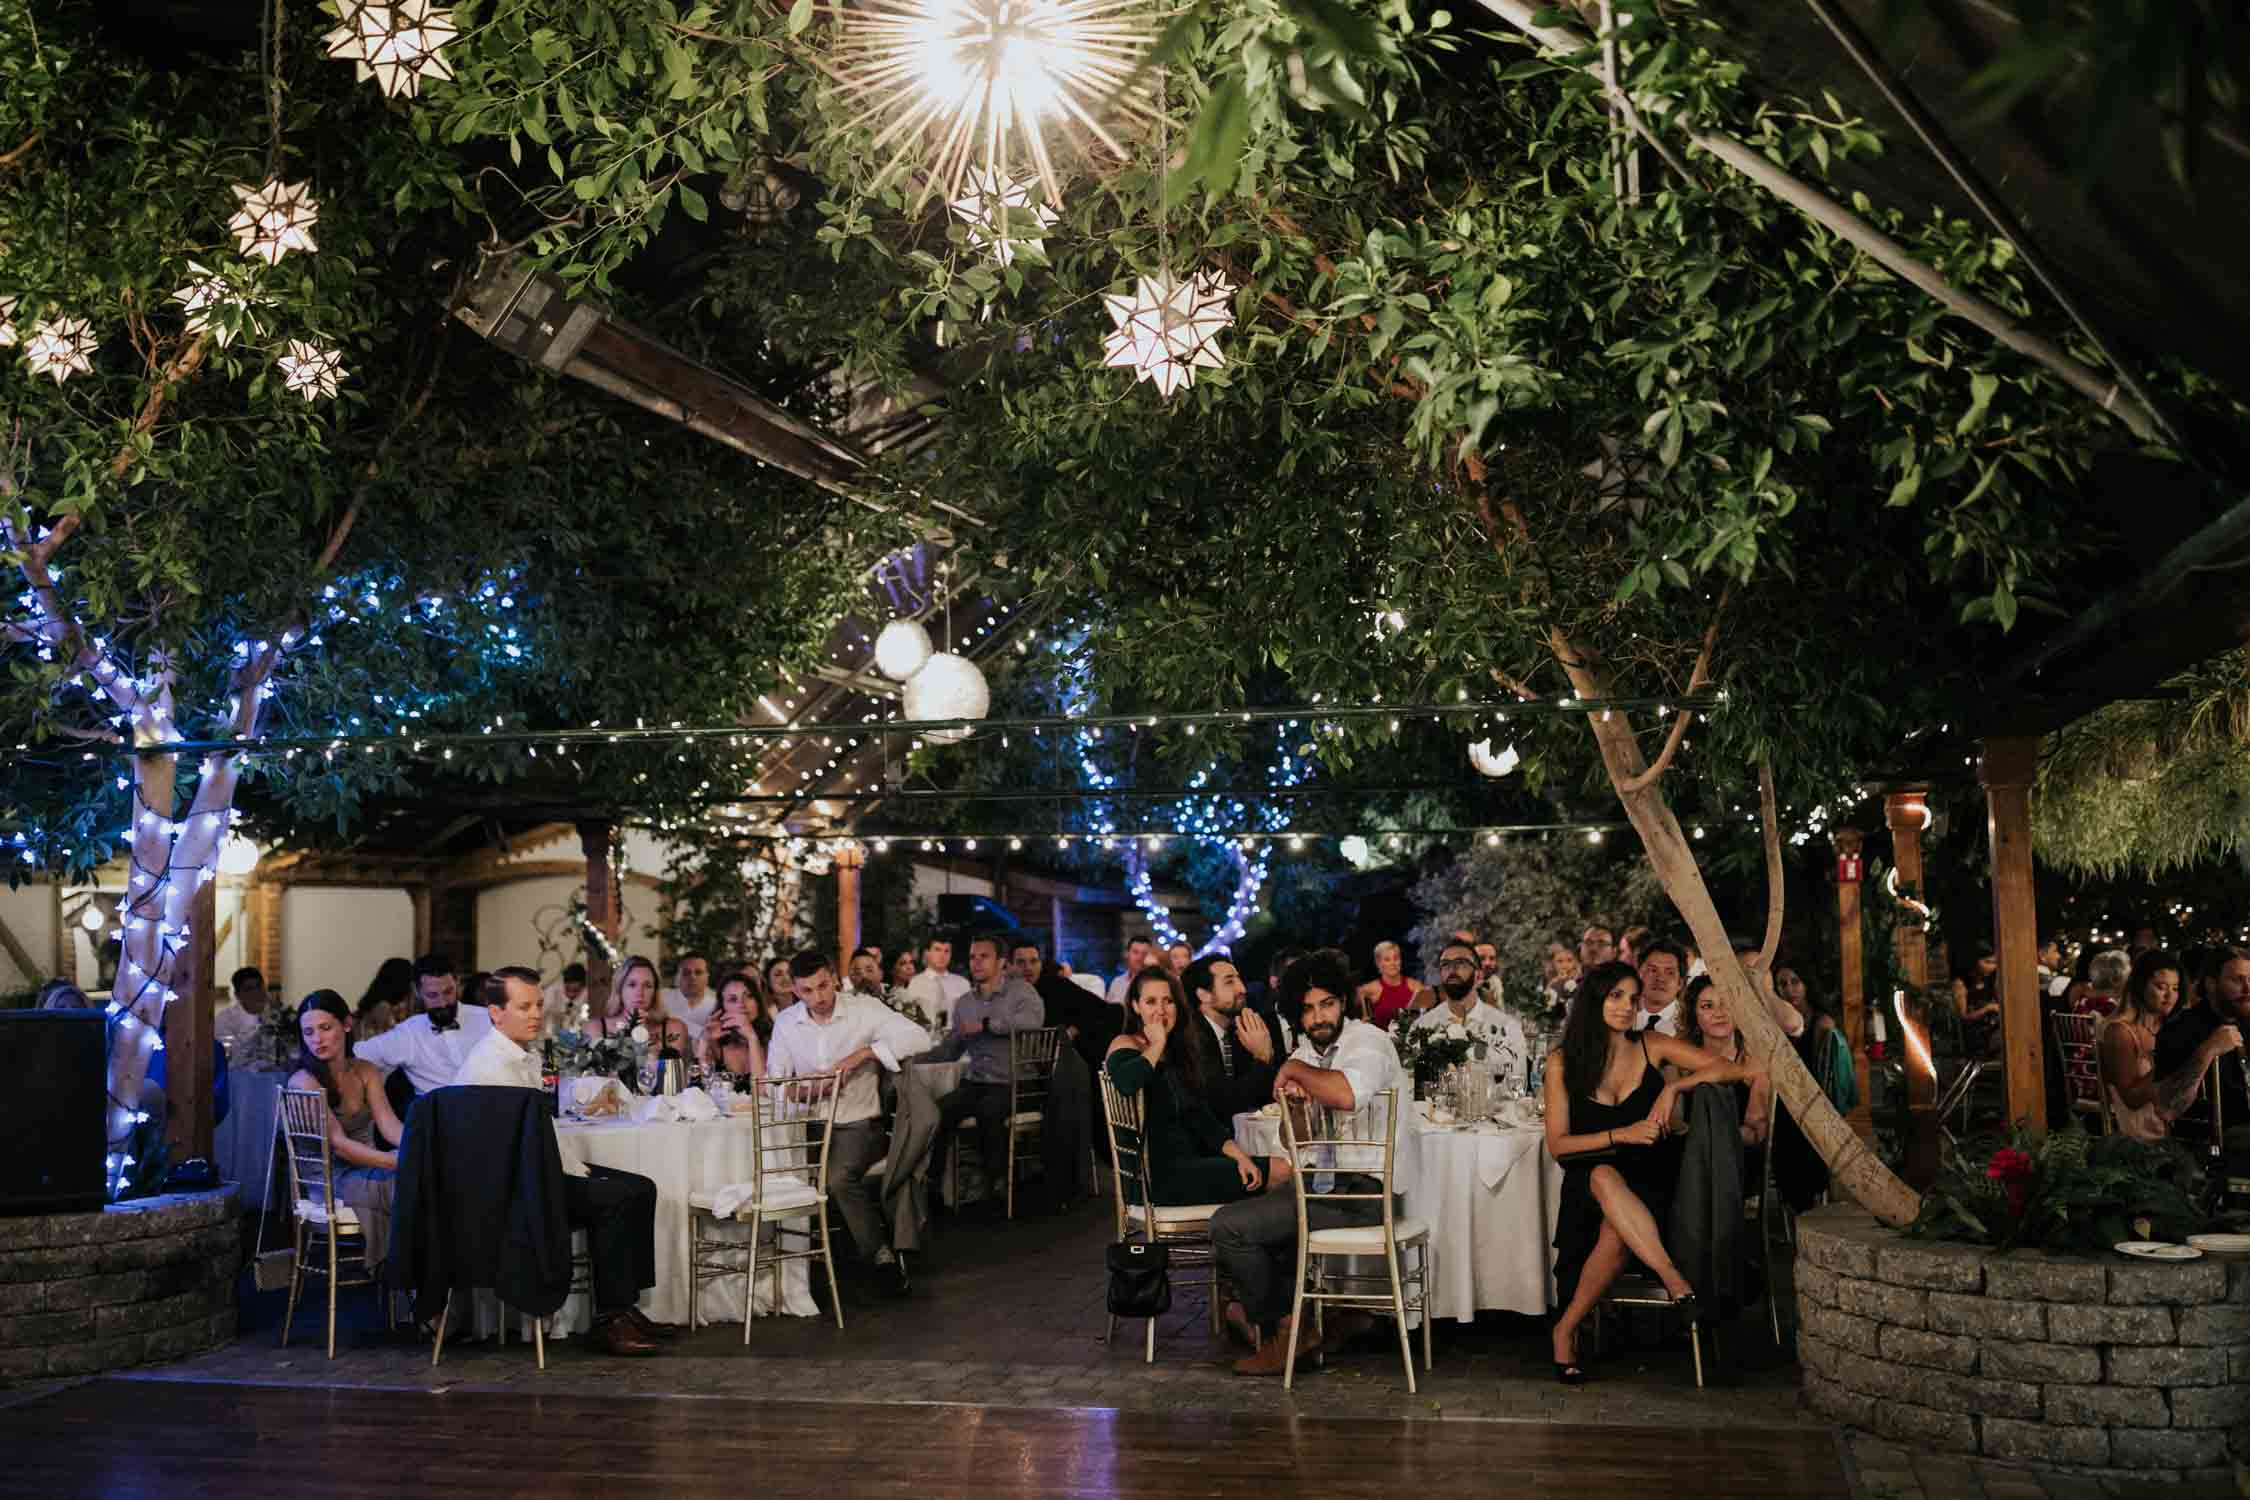 Guests during speeches at wedding reception at Madsen's Greenhouse wedding venue in Newmarket close to Toronto